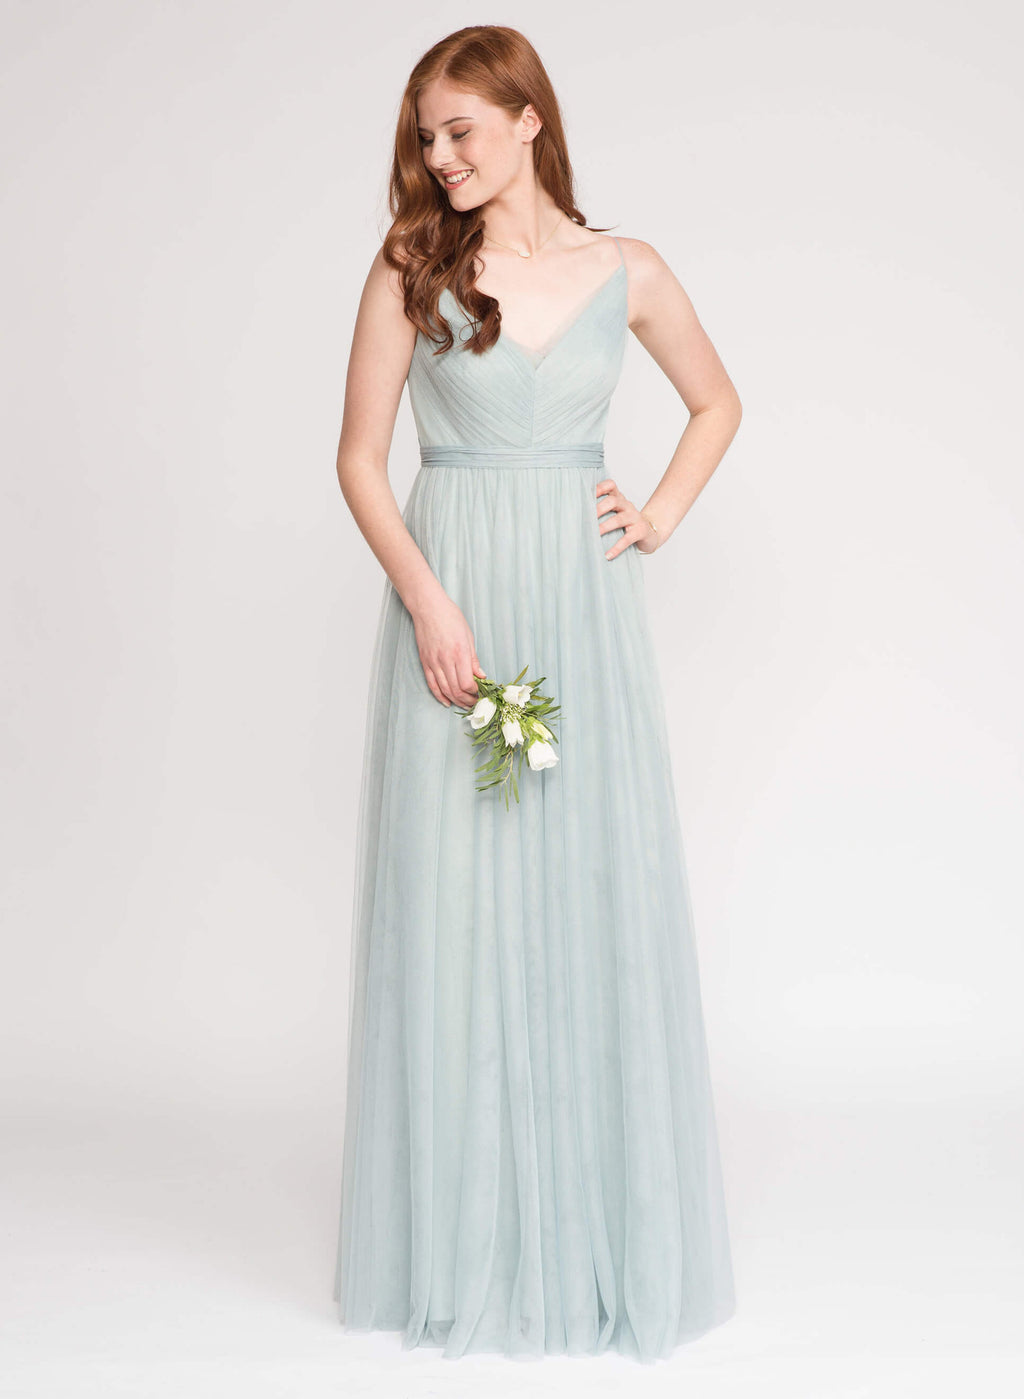 Amelie bridesmaid dress love tanya amelie dress ombrellifo Gallery